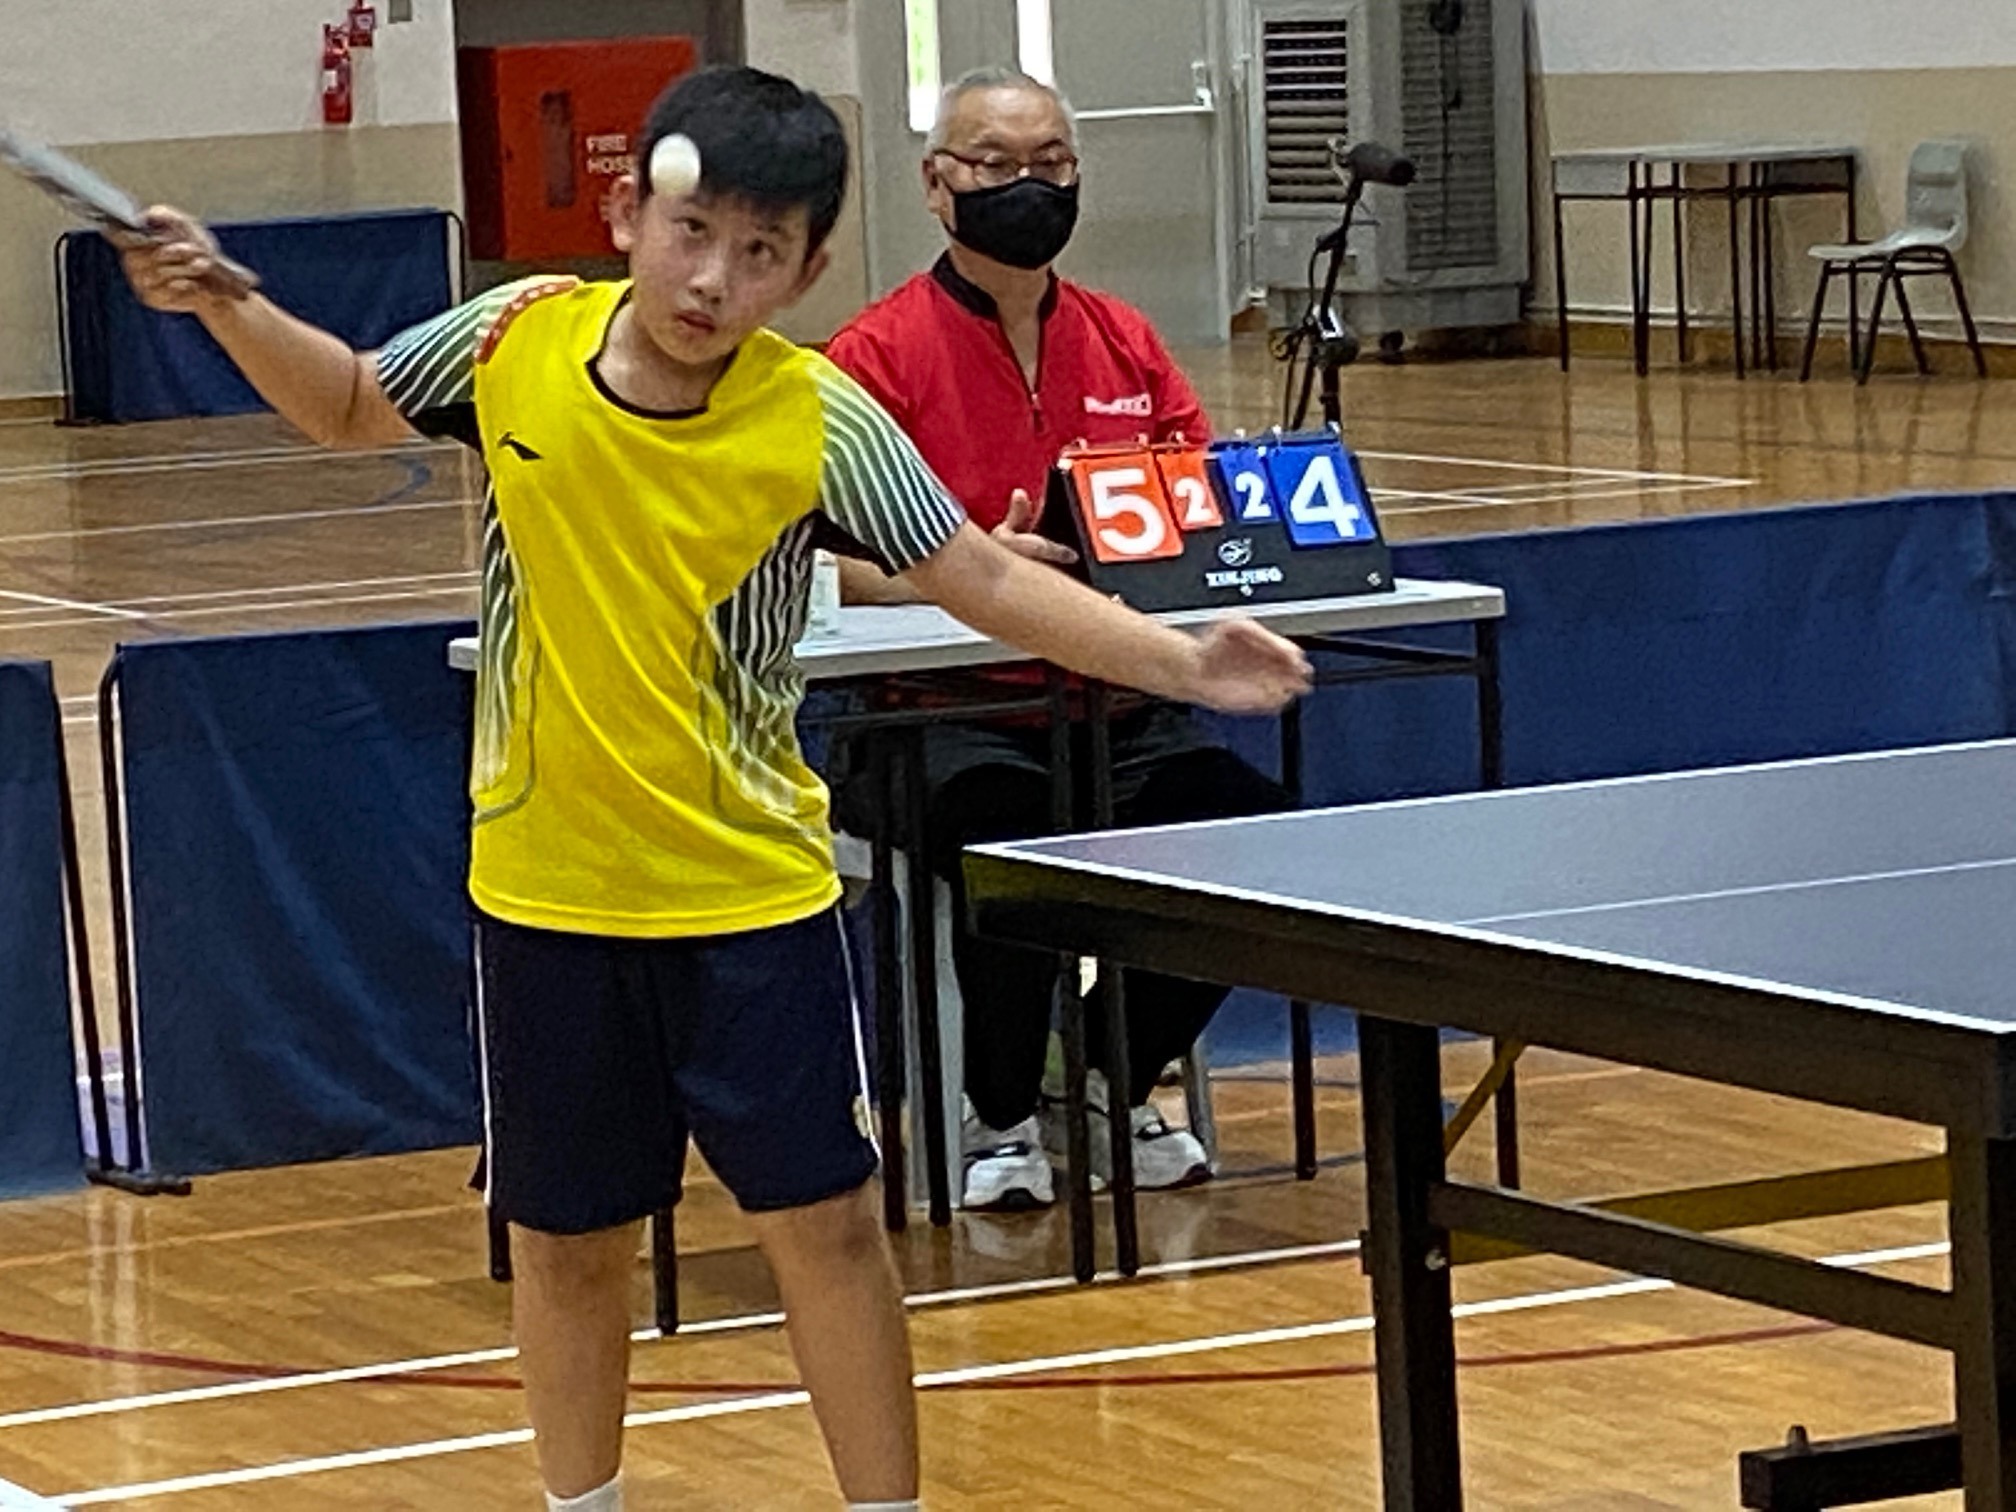 NSG East Zone Snr Div boys table tennis final - Kong Hwas Ang Ray Tze